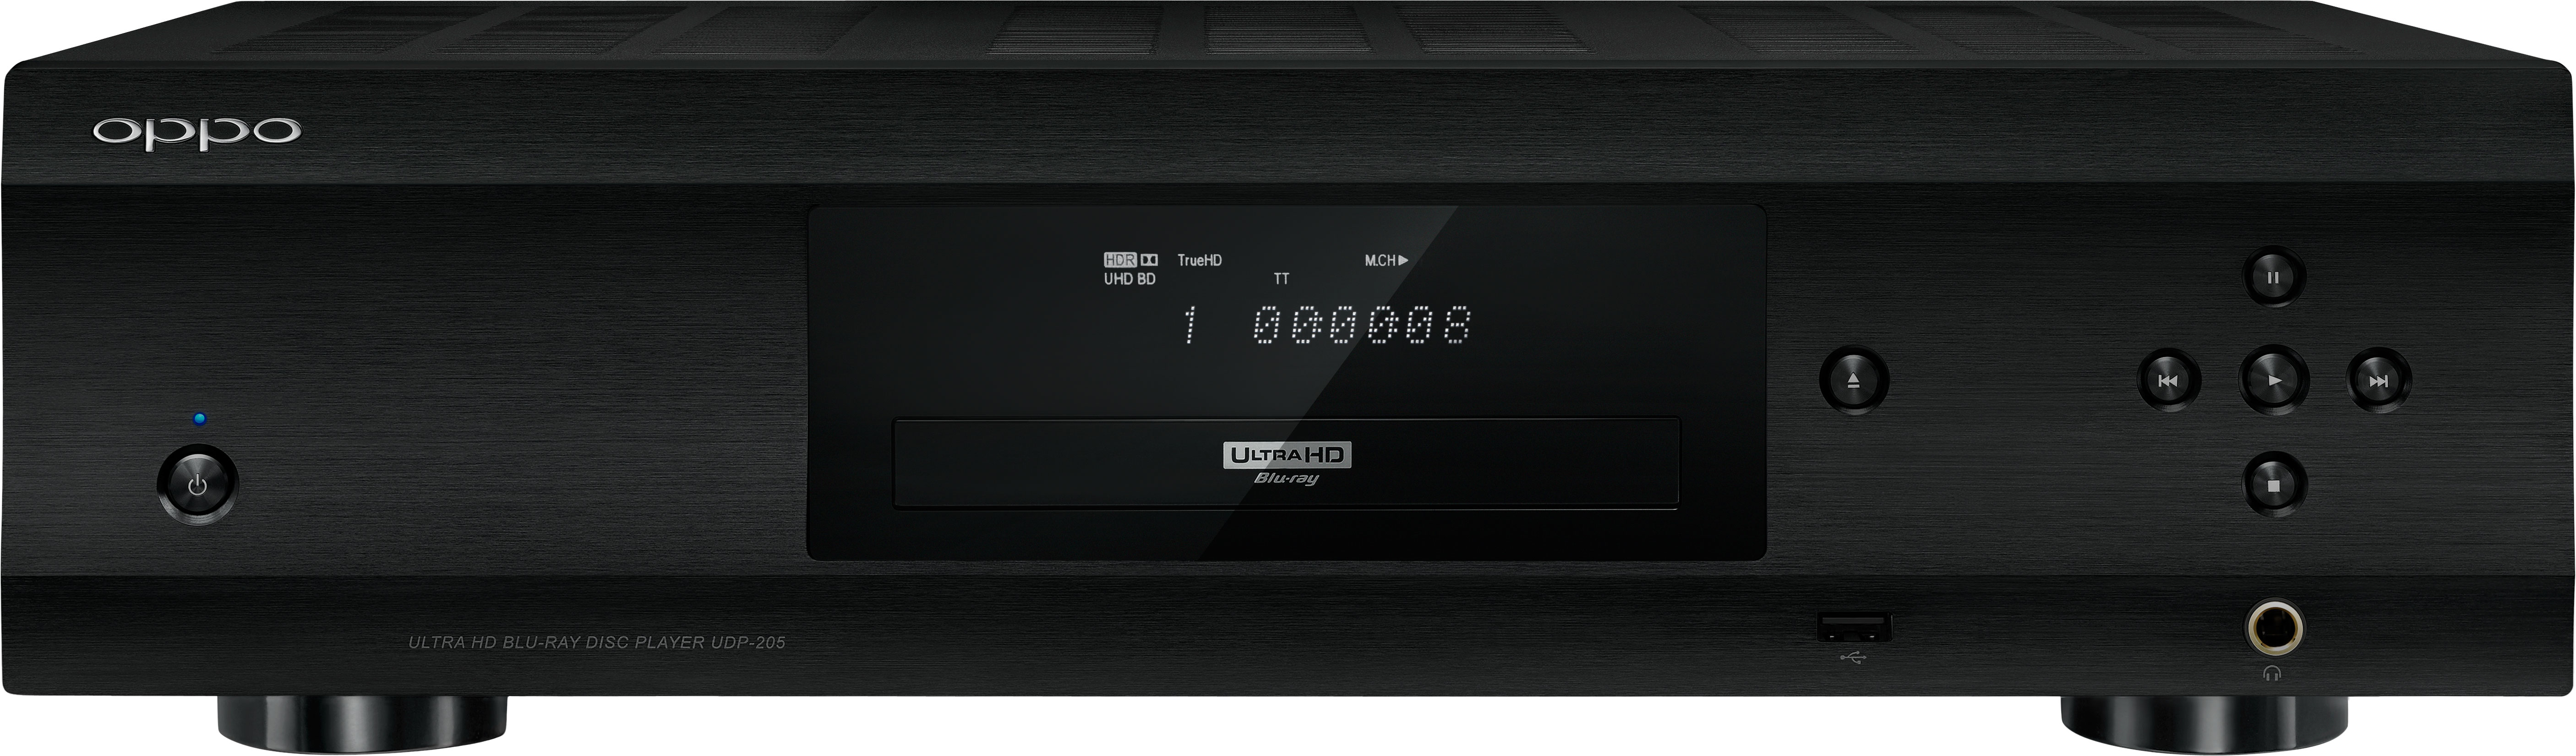 oppo udp 205 4k ultra hd audiophile blu ray disc player